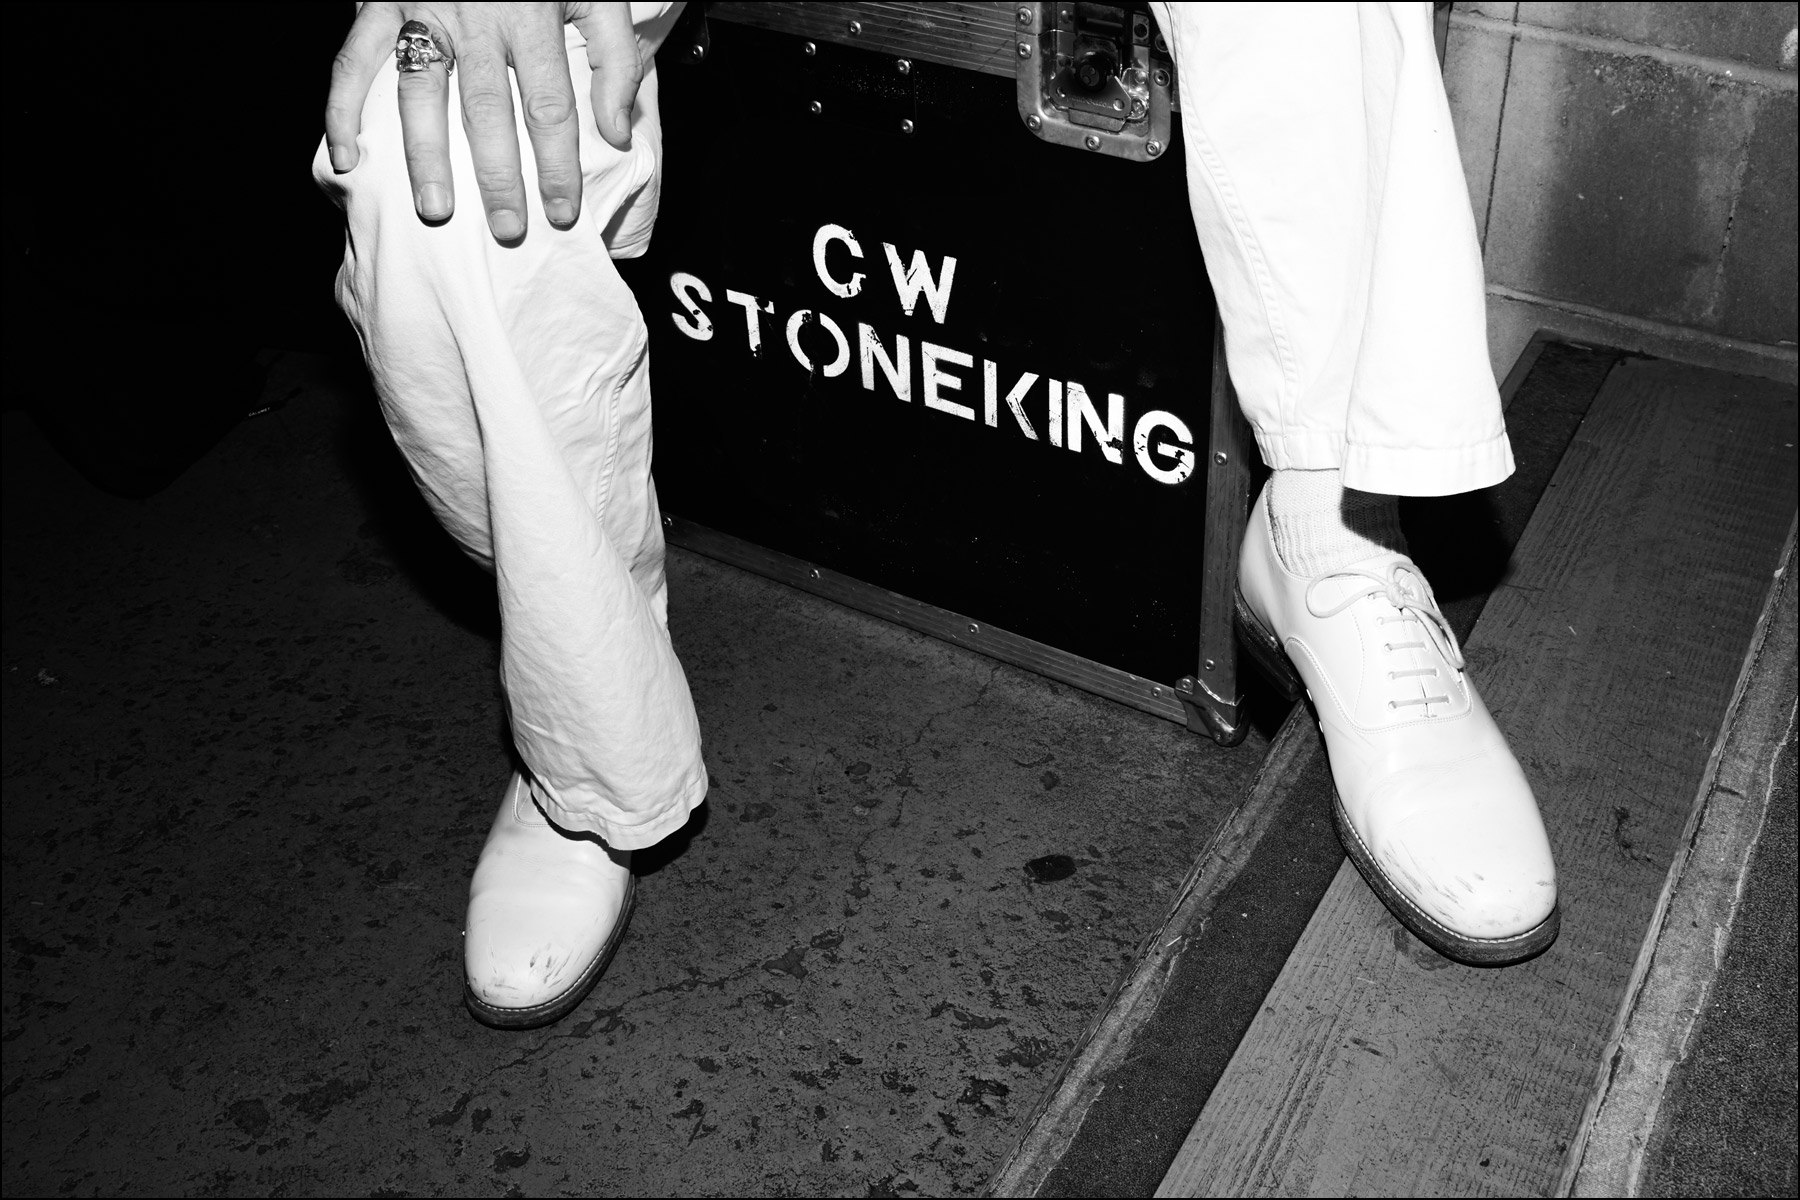 Musician C.W. Stoneking photographed for Ponyboy magazine in New York City by Alexander Thompson.